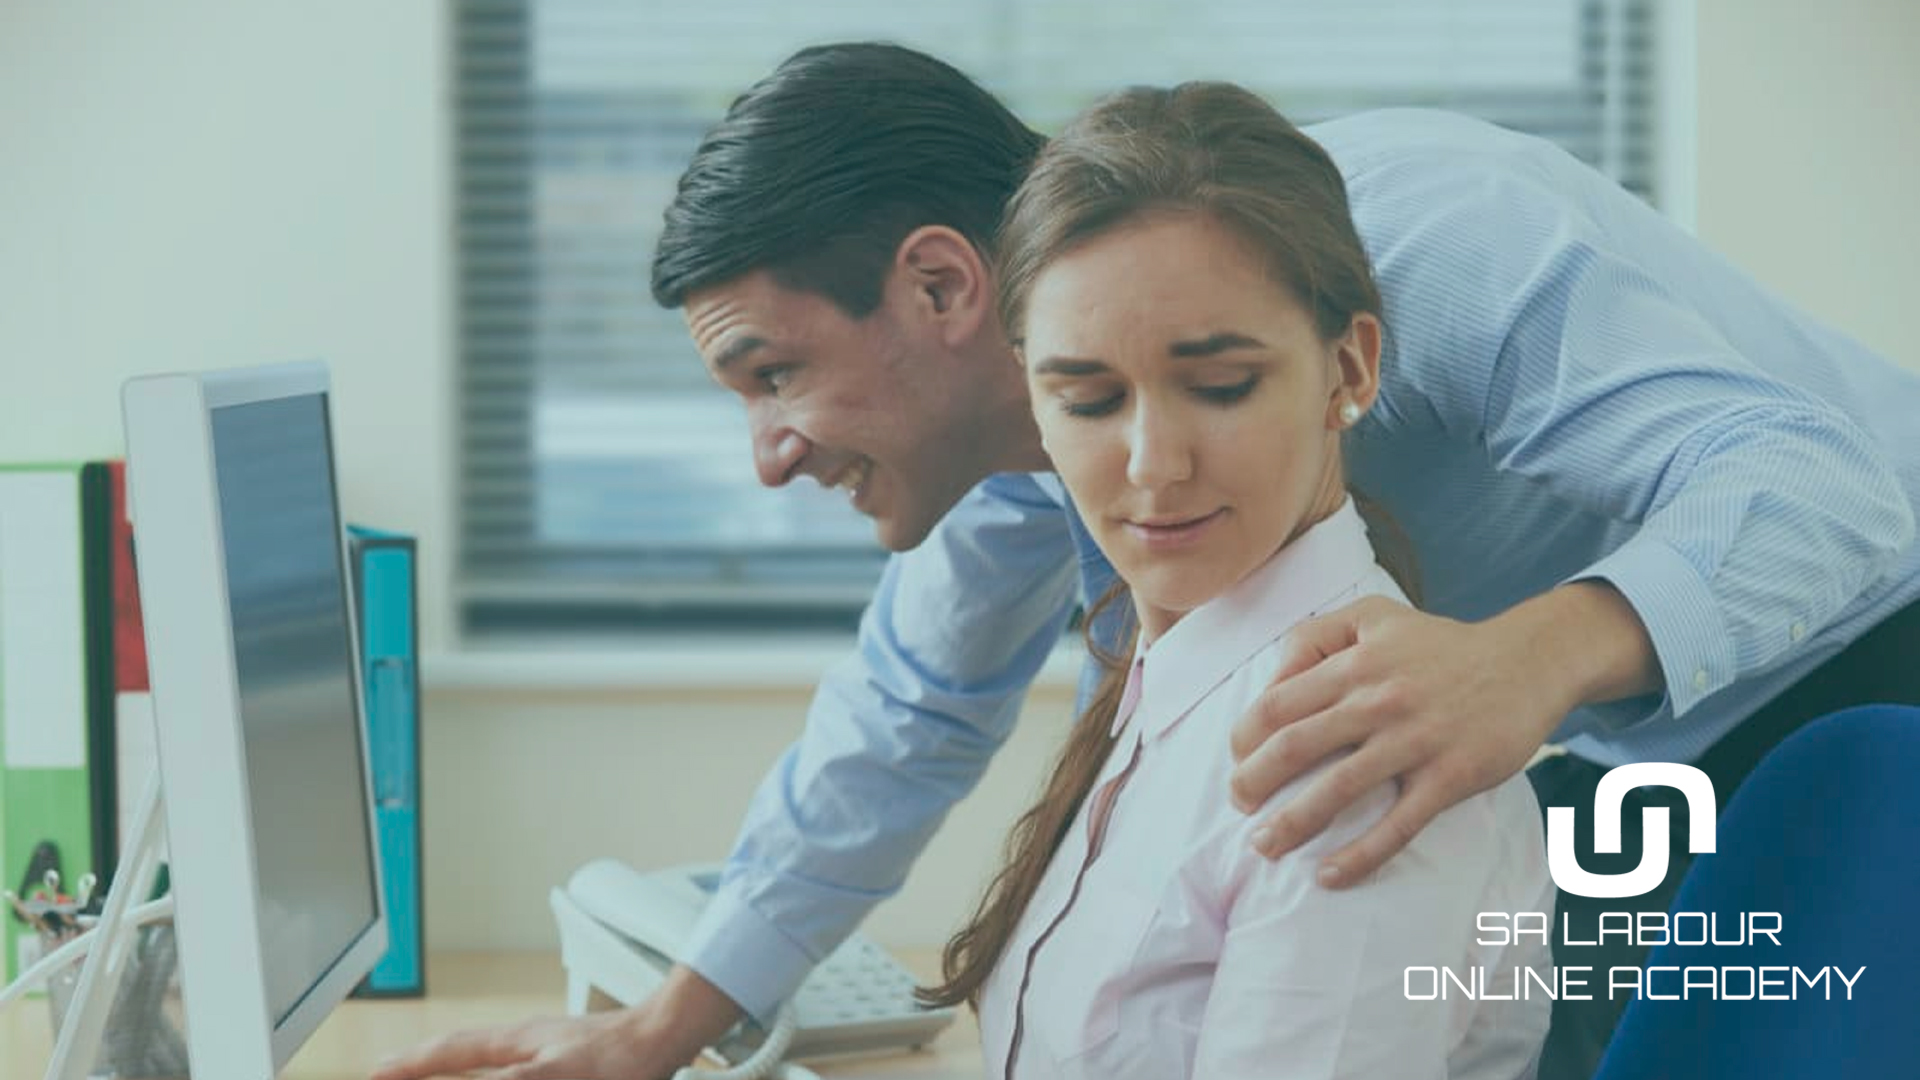 Workplace Sexual Harassment & The Law